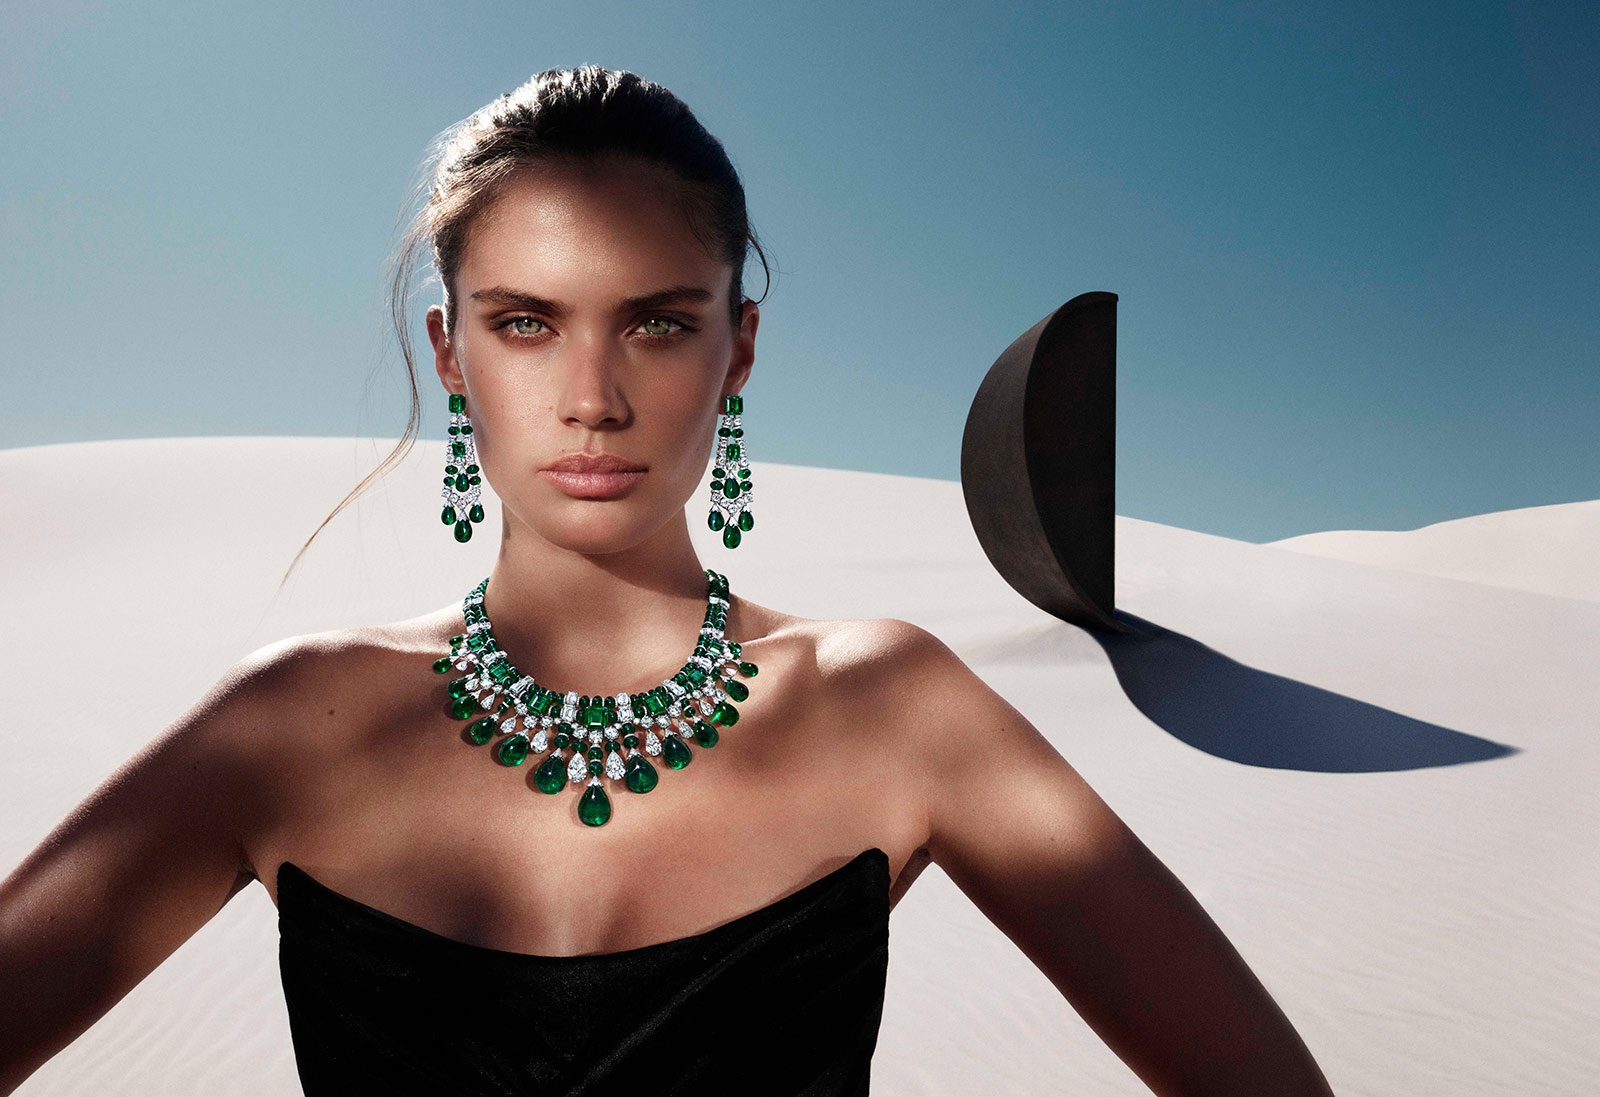 Pieces from the Graff Tribal High Jewellery Collection, including a pair of earrings with 60 carats of emeralds and 9 carats of diamonds and a matching necklace with 418 carats of emeralds and 76 carats of diamonds